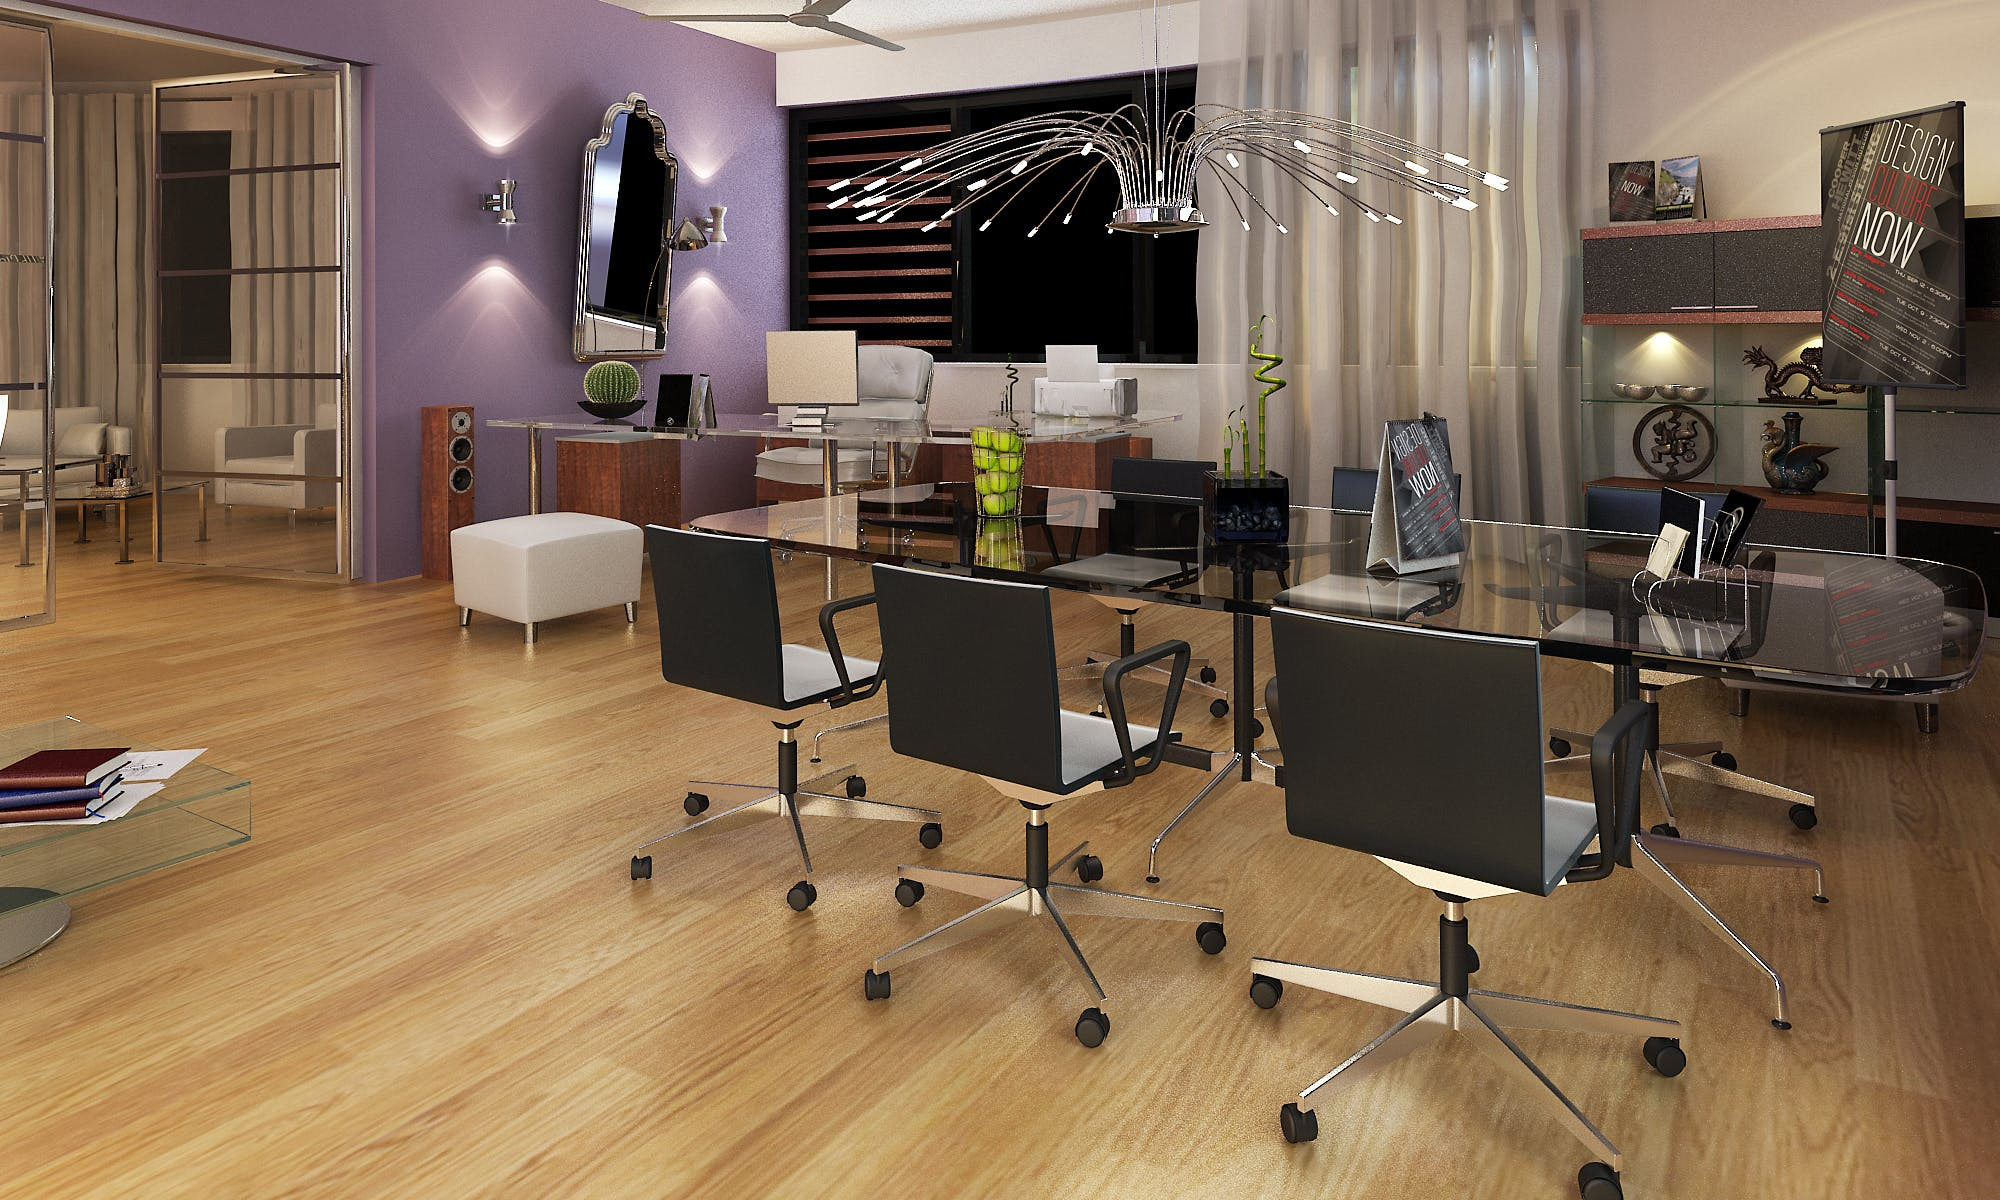 Office interior design in 3d dennis de priester archinect for Office 2010 design mode